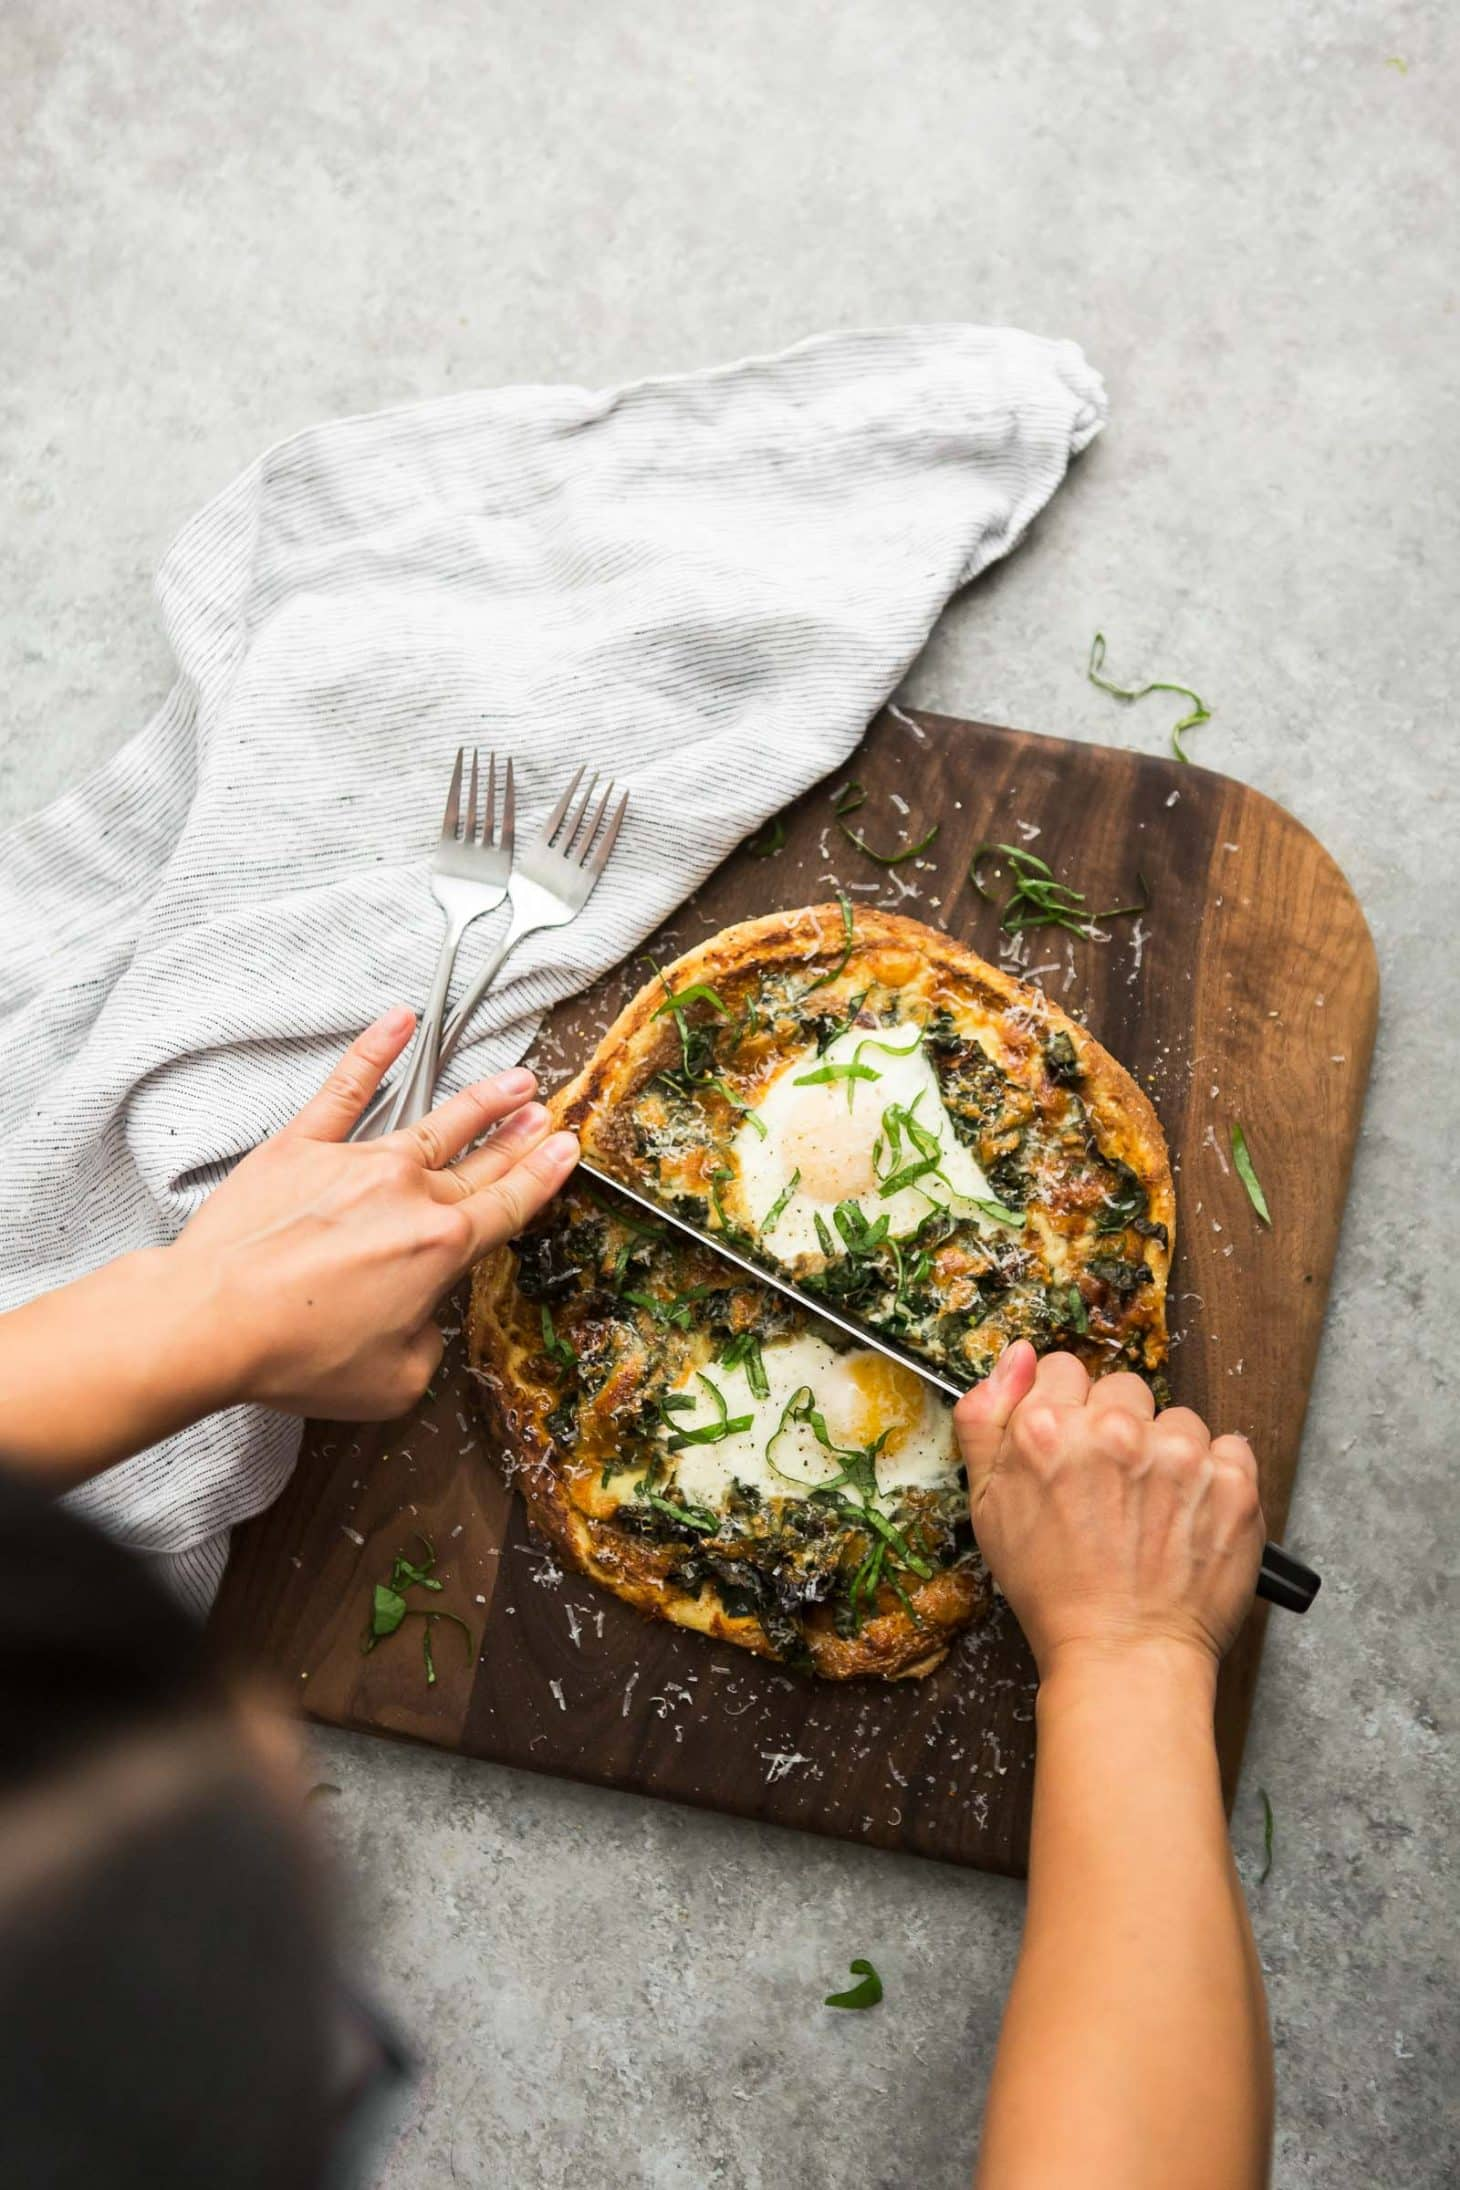 Garlicky Kale Pizza with Homemade Tomato Sauce and Eggs | @naturallyella